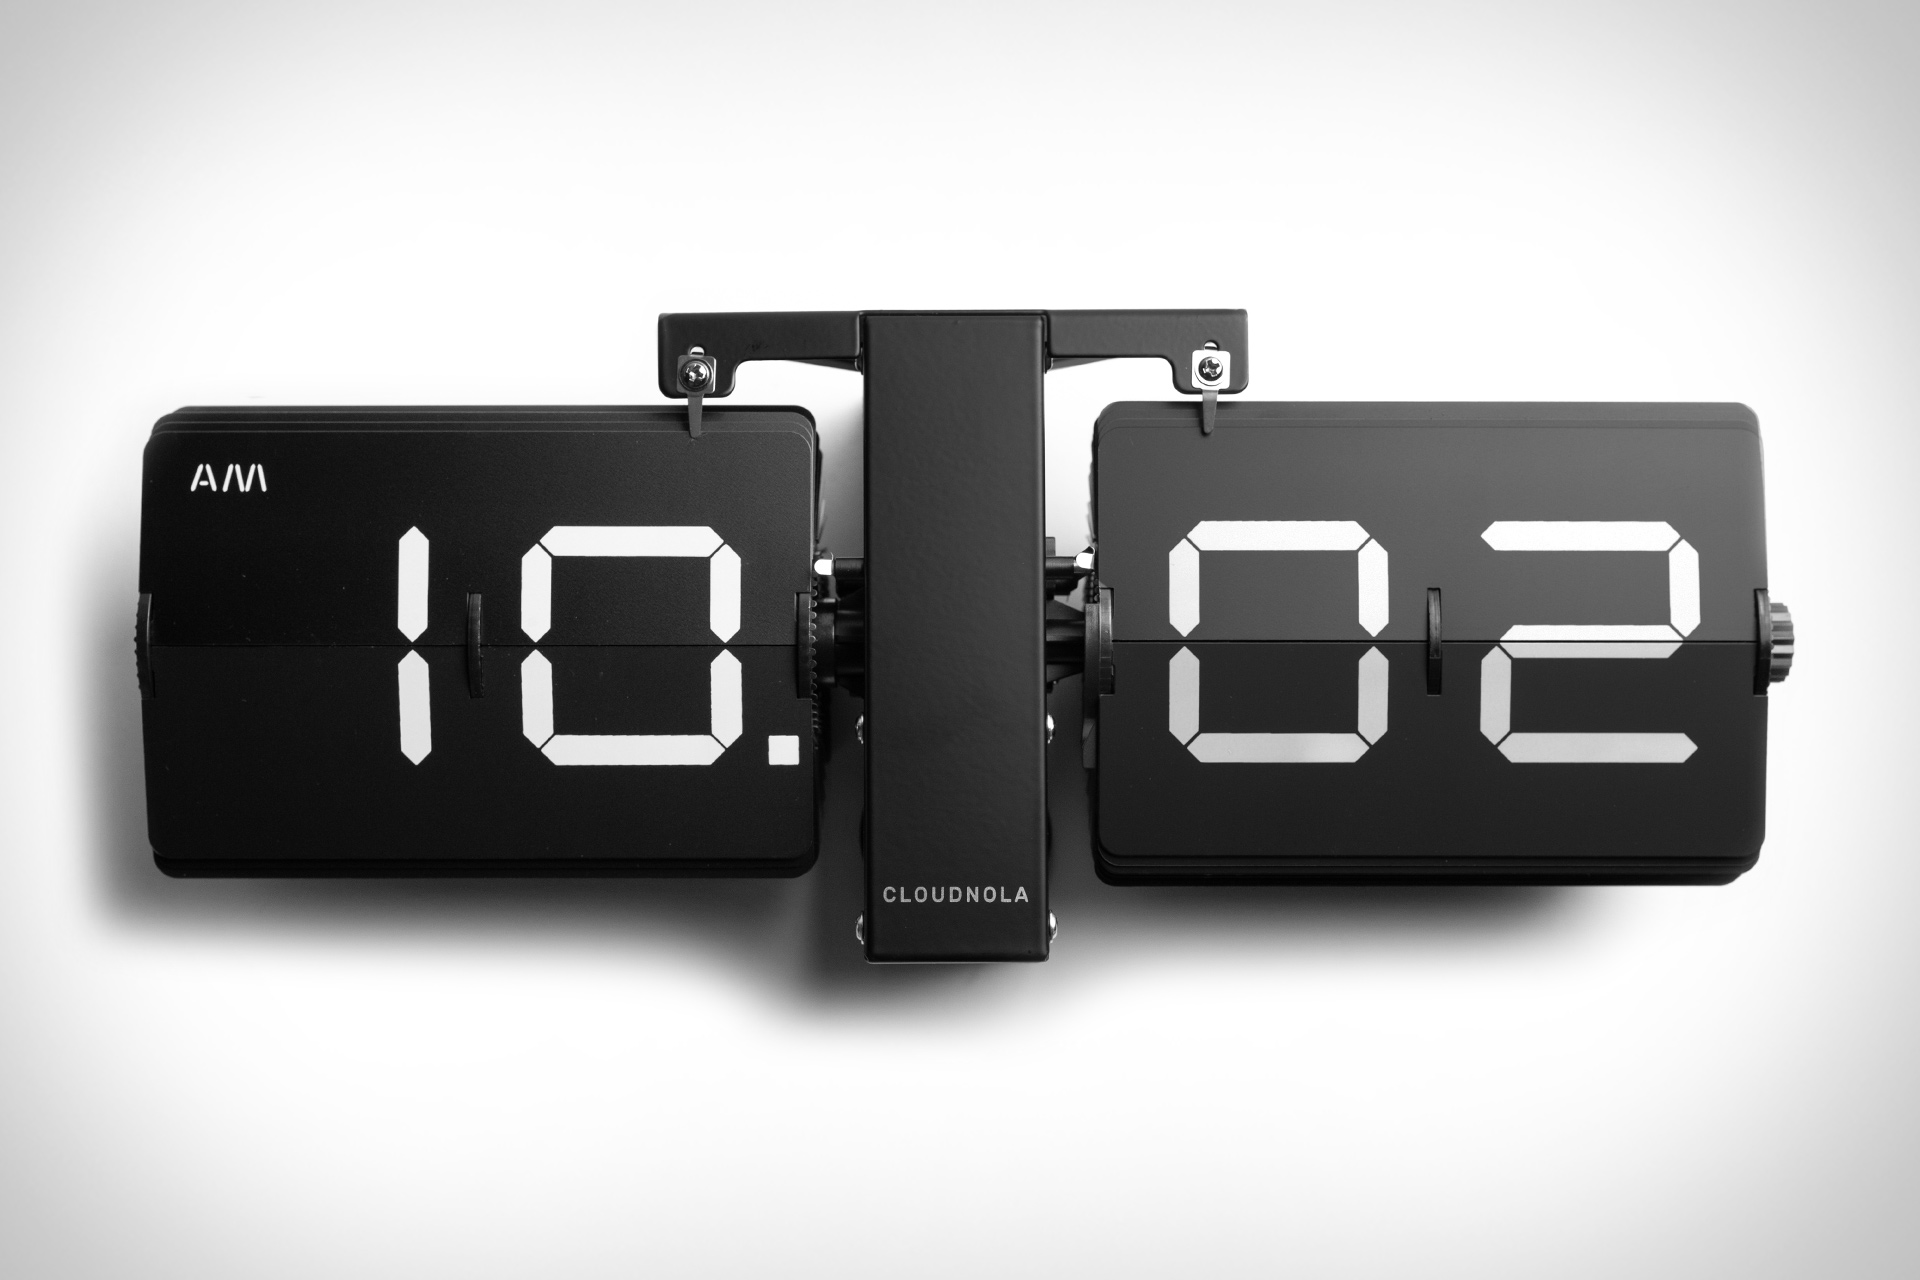 Flip Clock Cloudnola Flip Clock